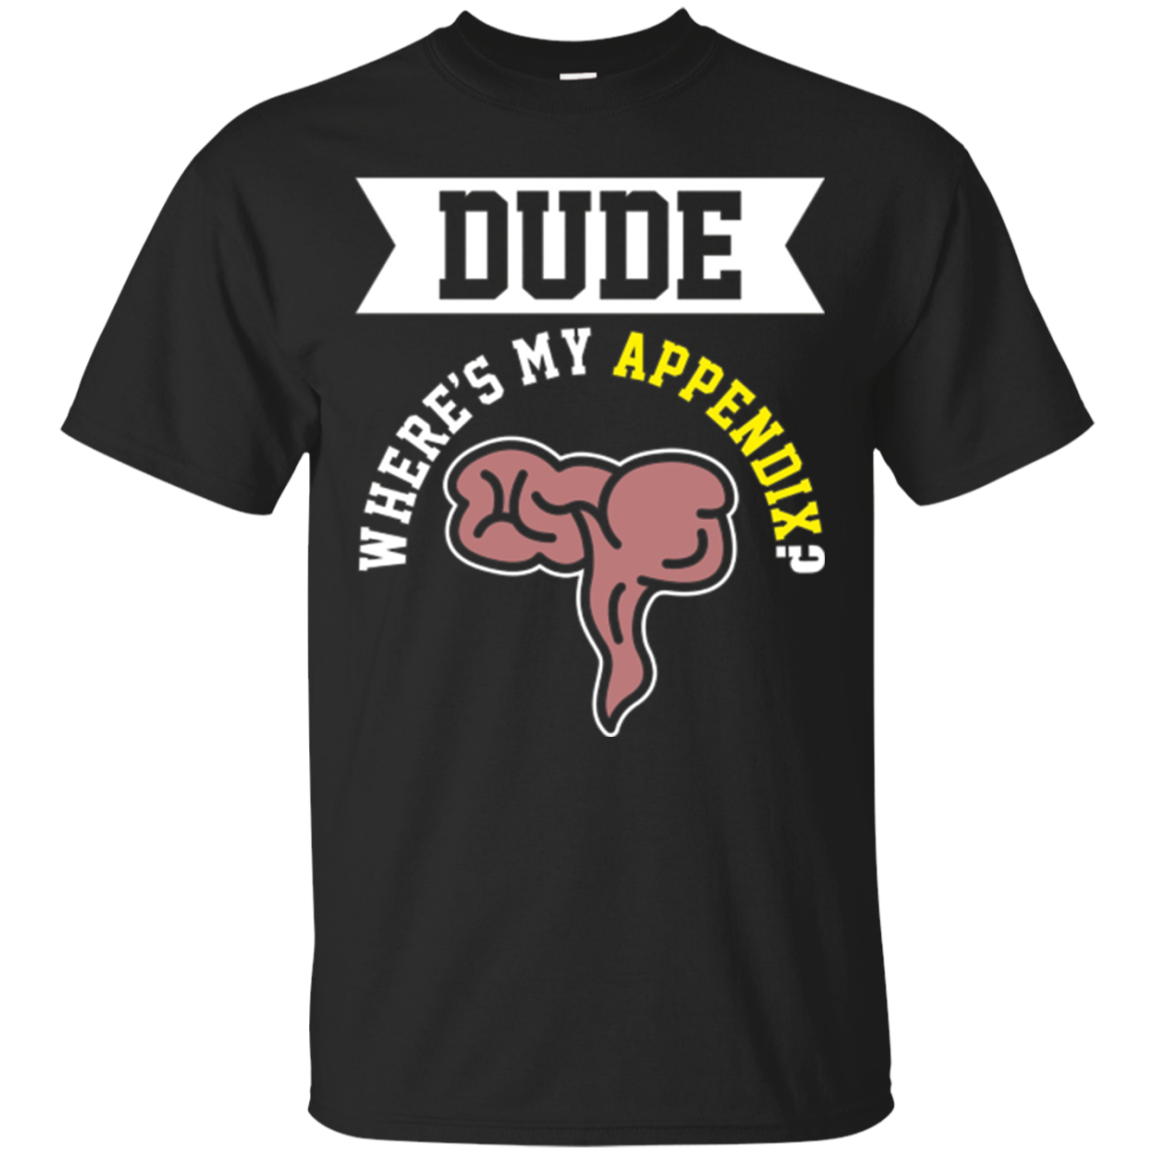 Funny Dude Where's My Appendix T-shirt Surgery Meme Gift